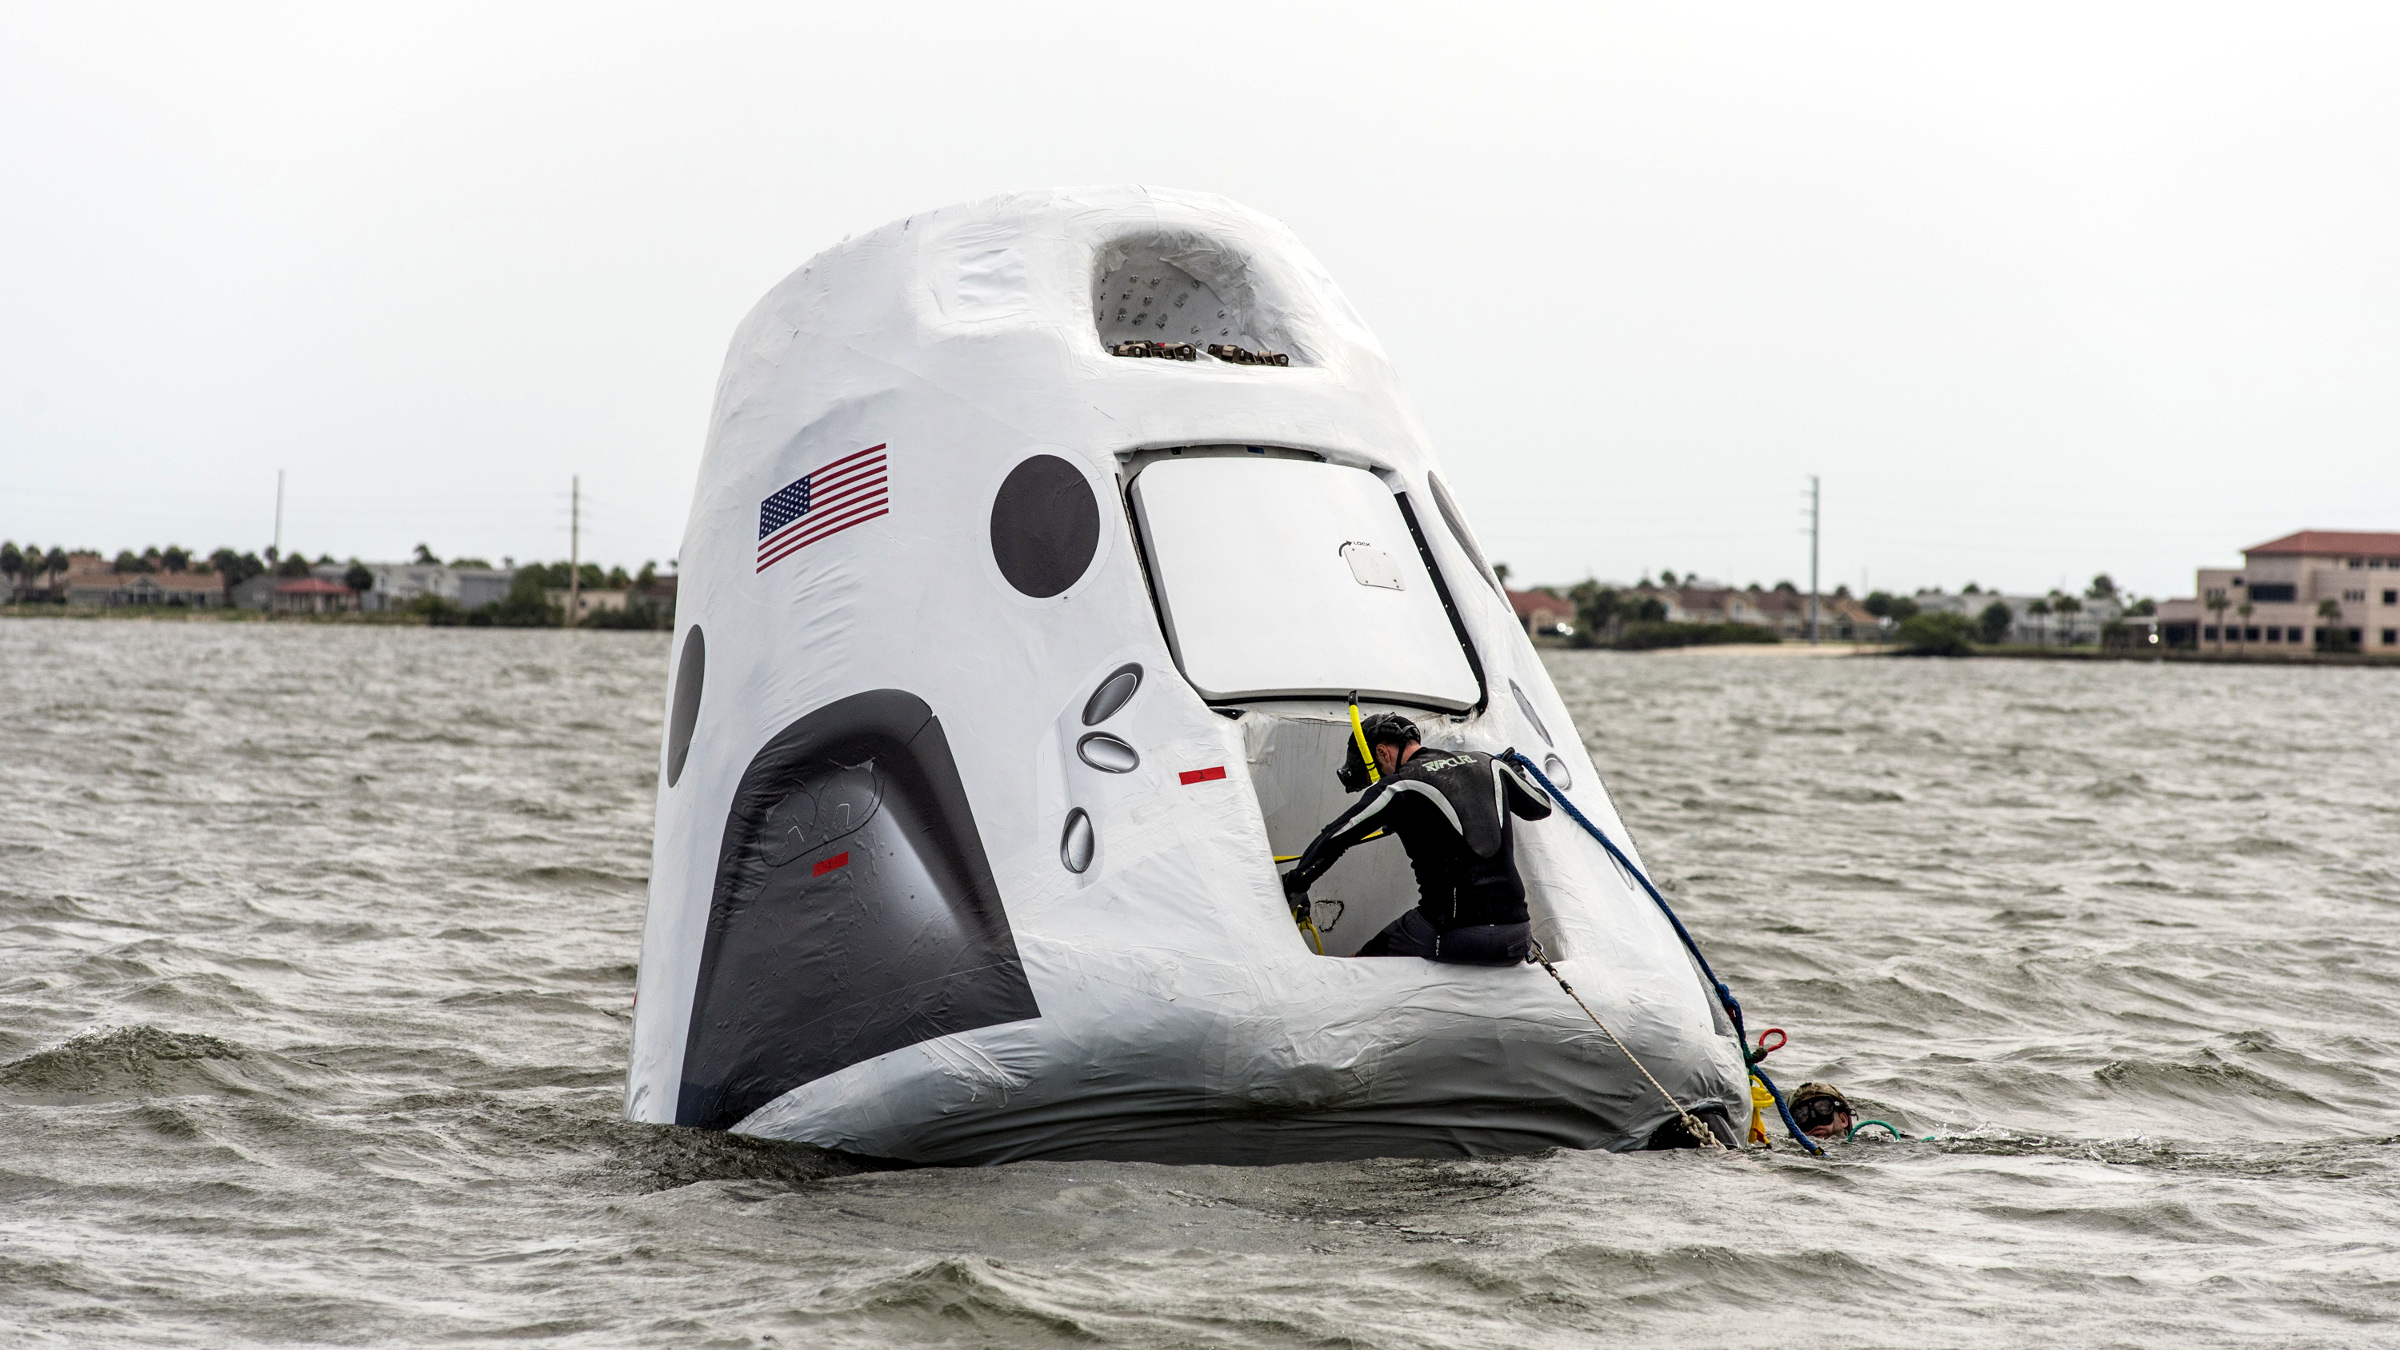 Personnel from NASA, SpaceX and the U.S. Air Force have begun practicing recovery operations for the SpaceX Crew Dragon. Using a full-size model of the spacecraft that will take astronauts to the International Space Station, Air Force parajumpers practice helping astronauts out of the SpaceX Crew Dragon following a mission.